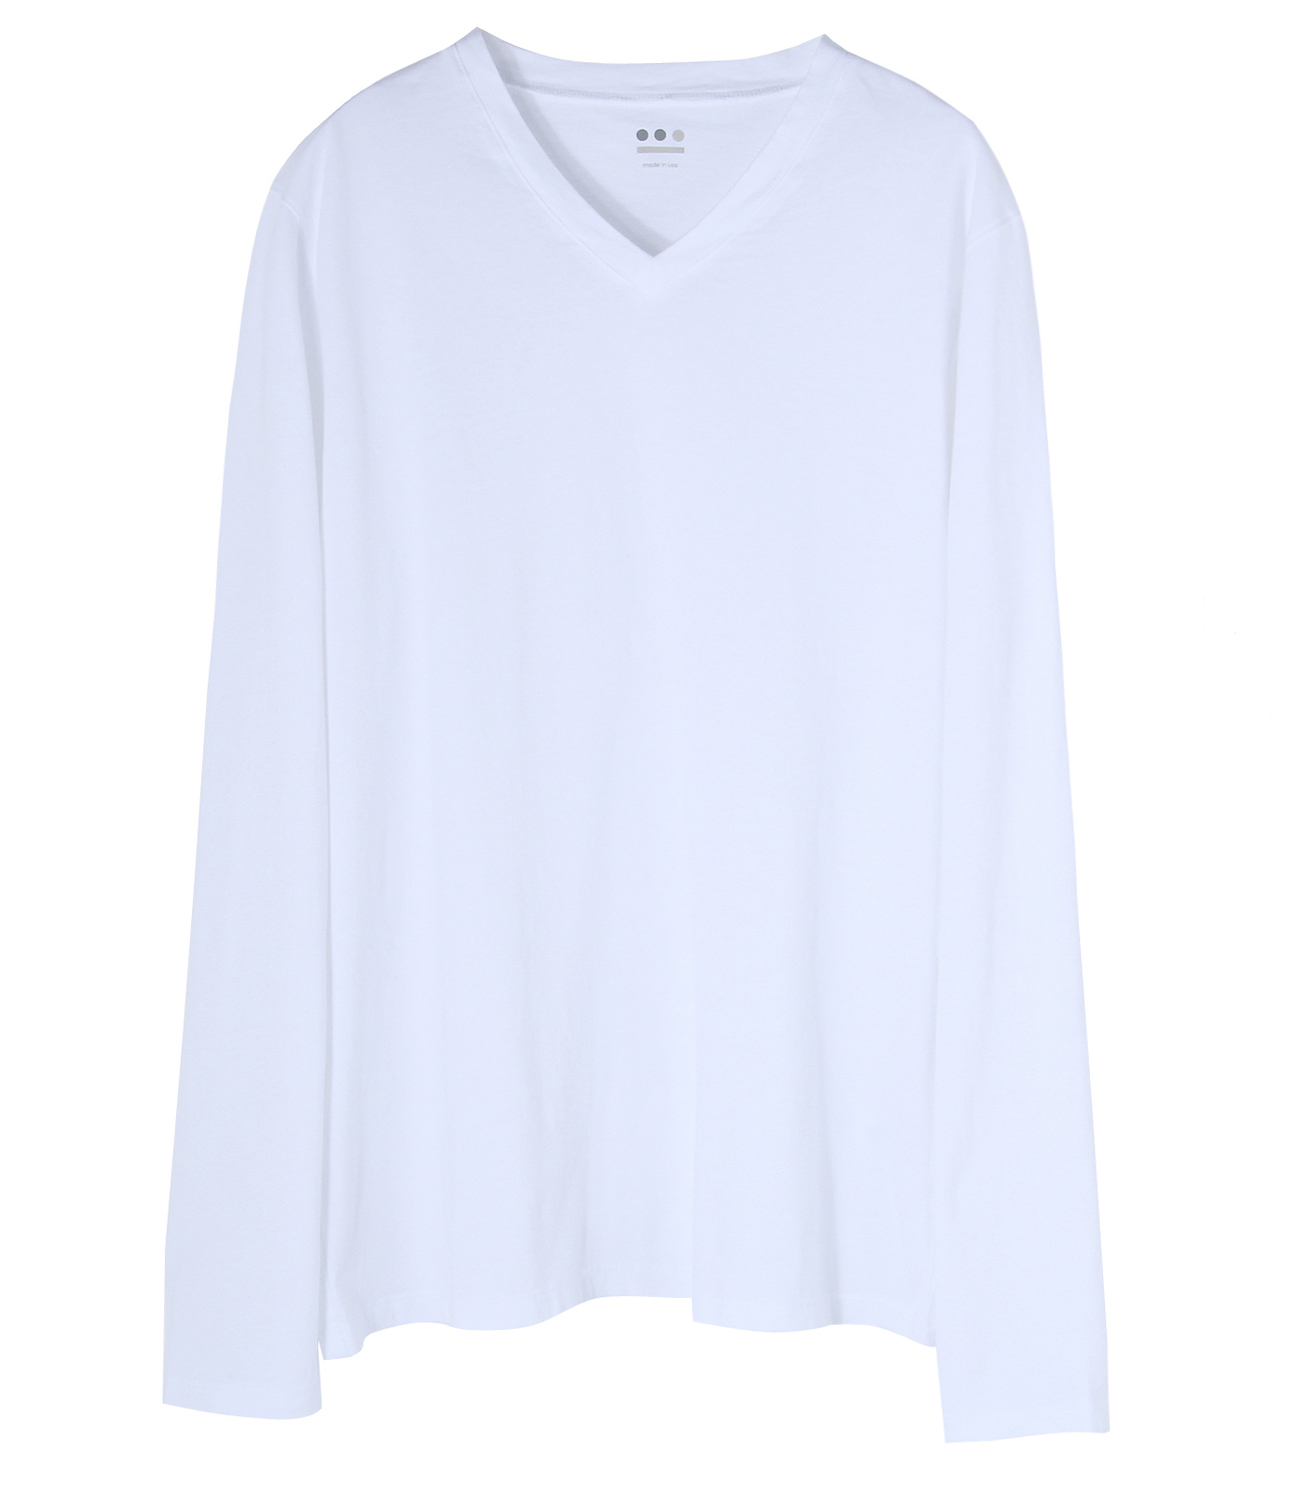 Ryan (new basic line) sanded jersey 詳細画像 white 1